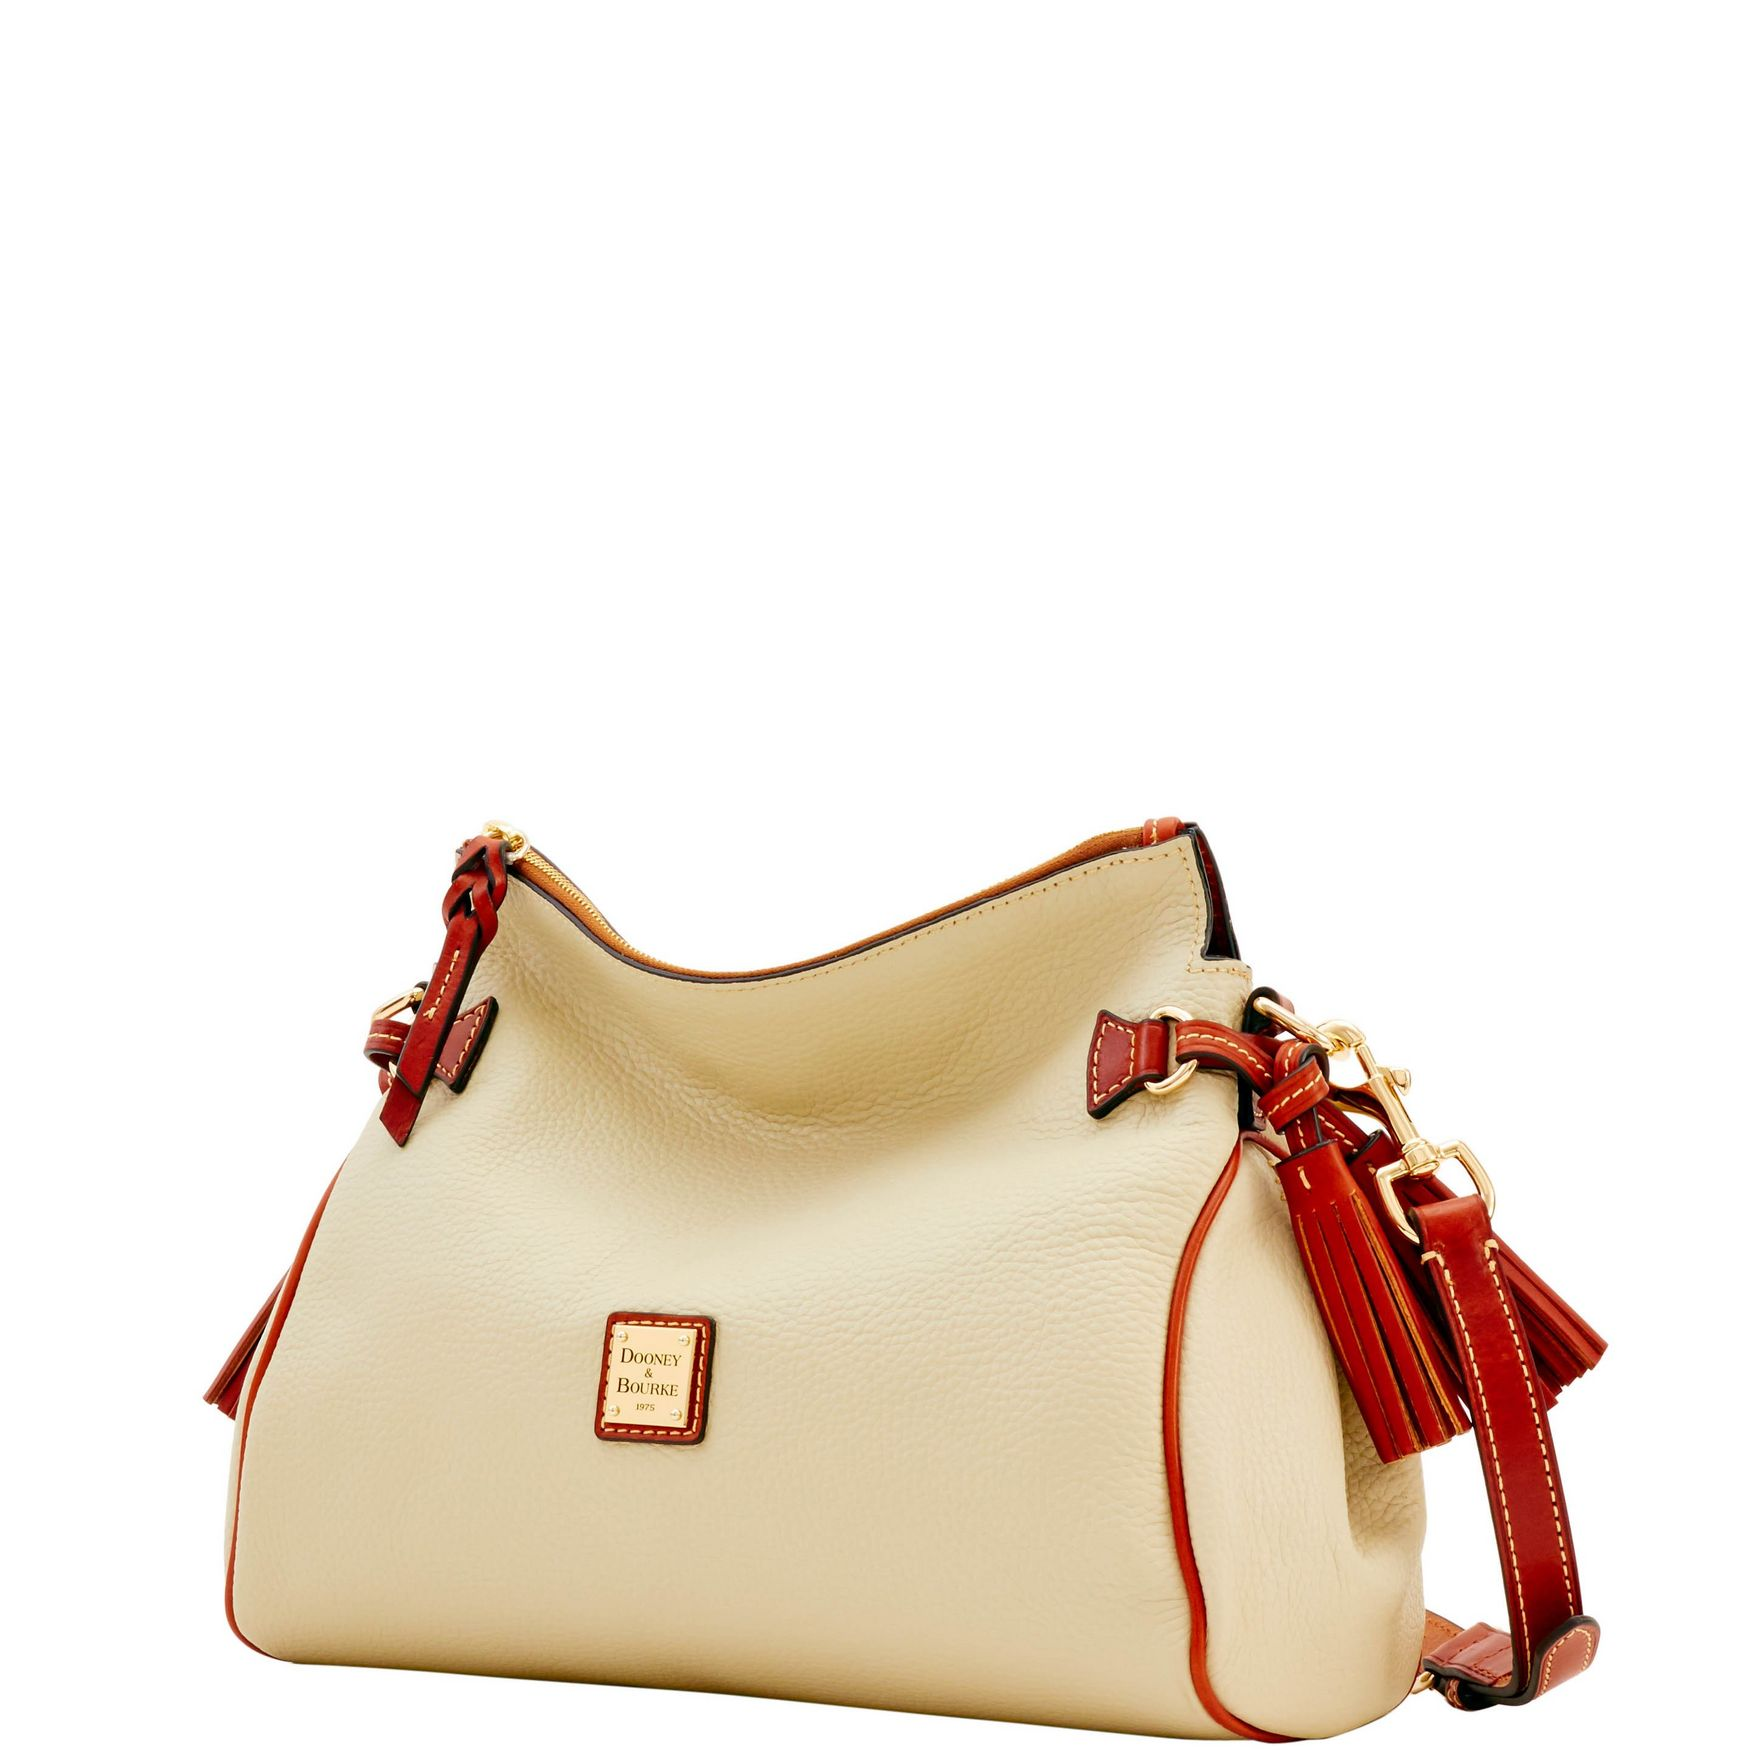 Dooney-amp-Bourke-Pebble-Grain-Medium-Zip-Crossbody-Shoulder-Bag thumbnail 12